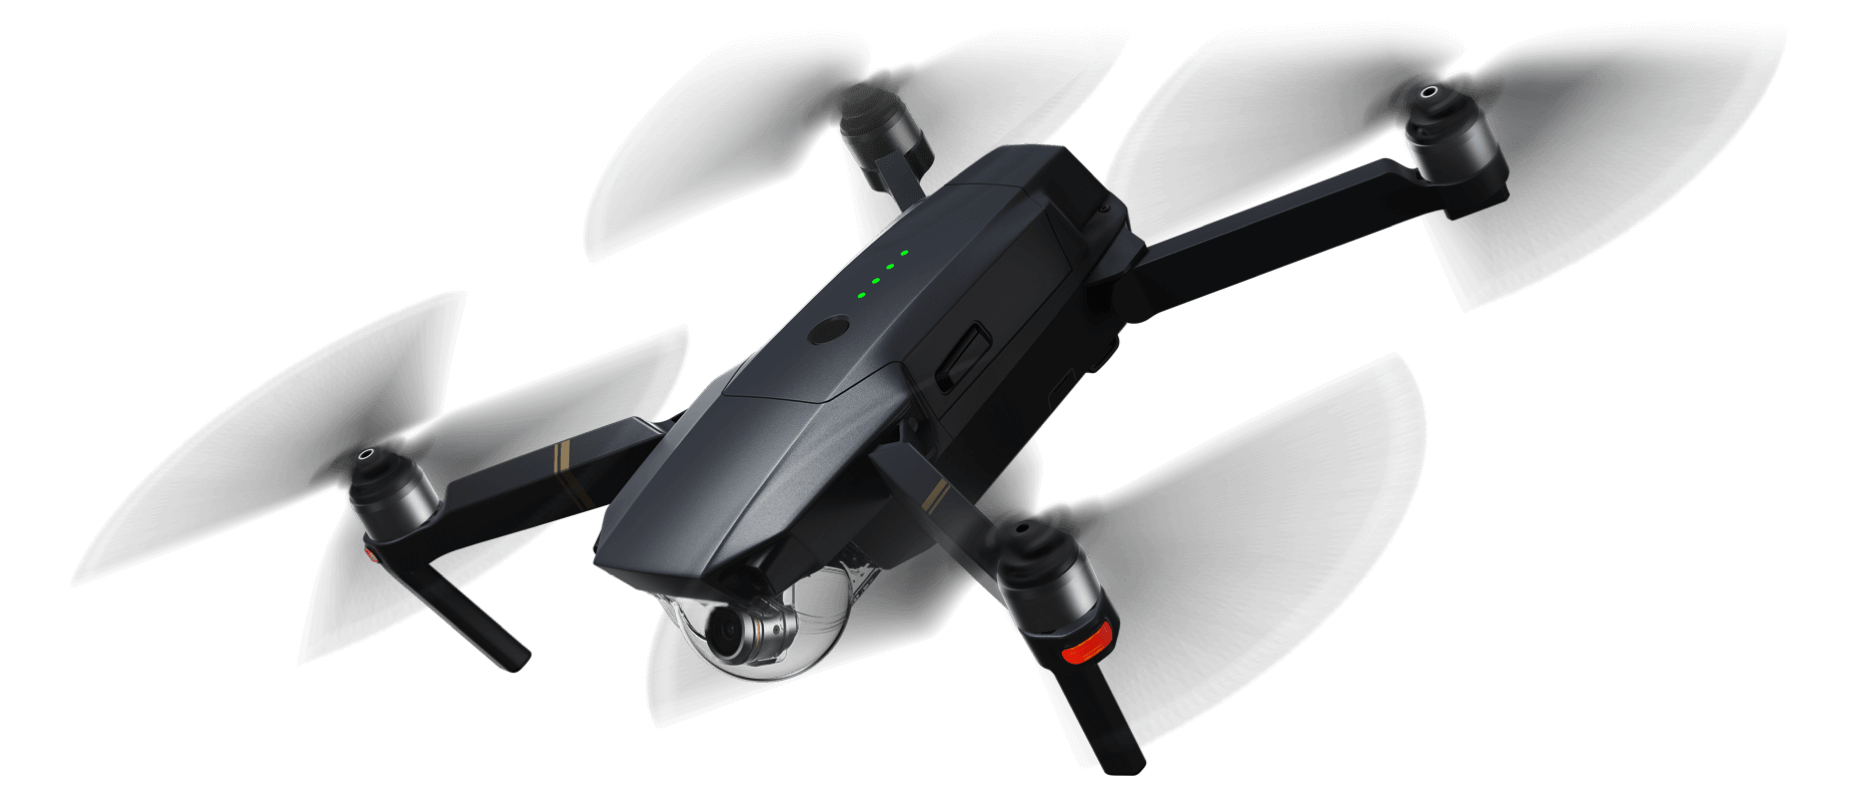 http://www2.djicdn.com/assets/images/products/mavic/s1-img-v2/sport-8f26f2d81f6efa32bfc6940a34d18c8e.png